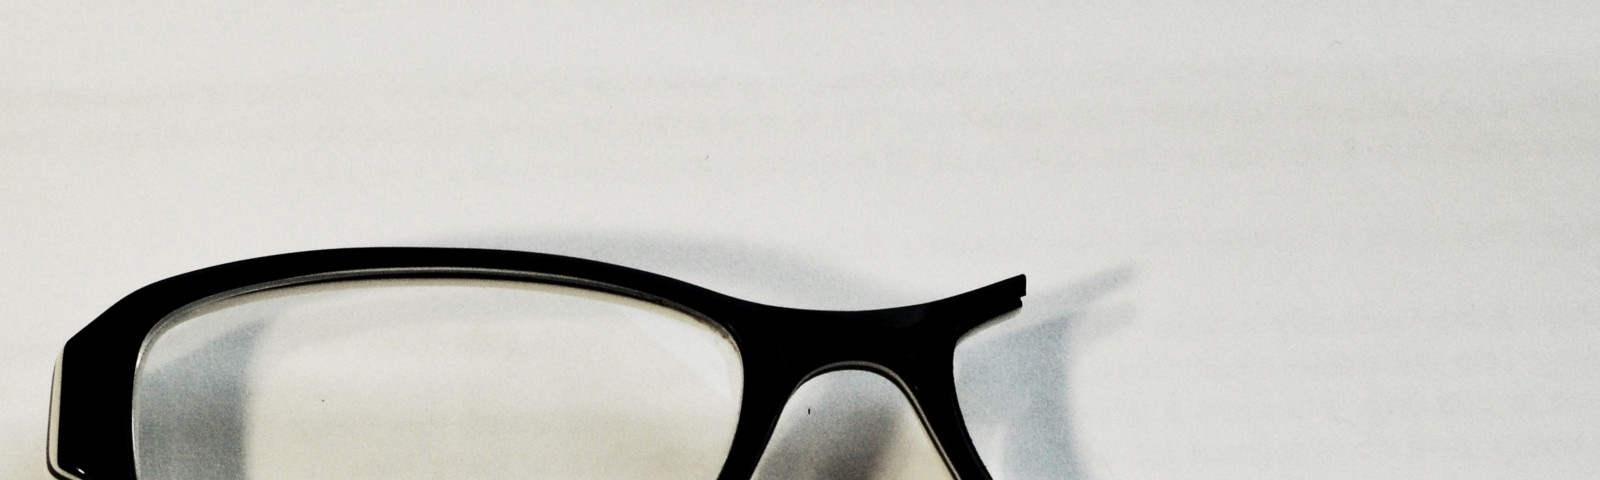 93f07c26d1 6 Reasons Why Buying Cheap Glasses Online May Be the Worst Deal Ever